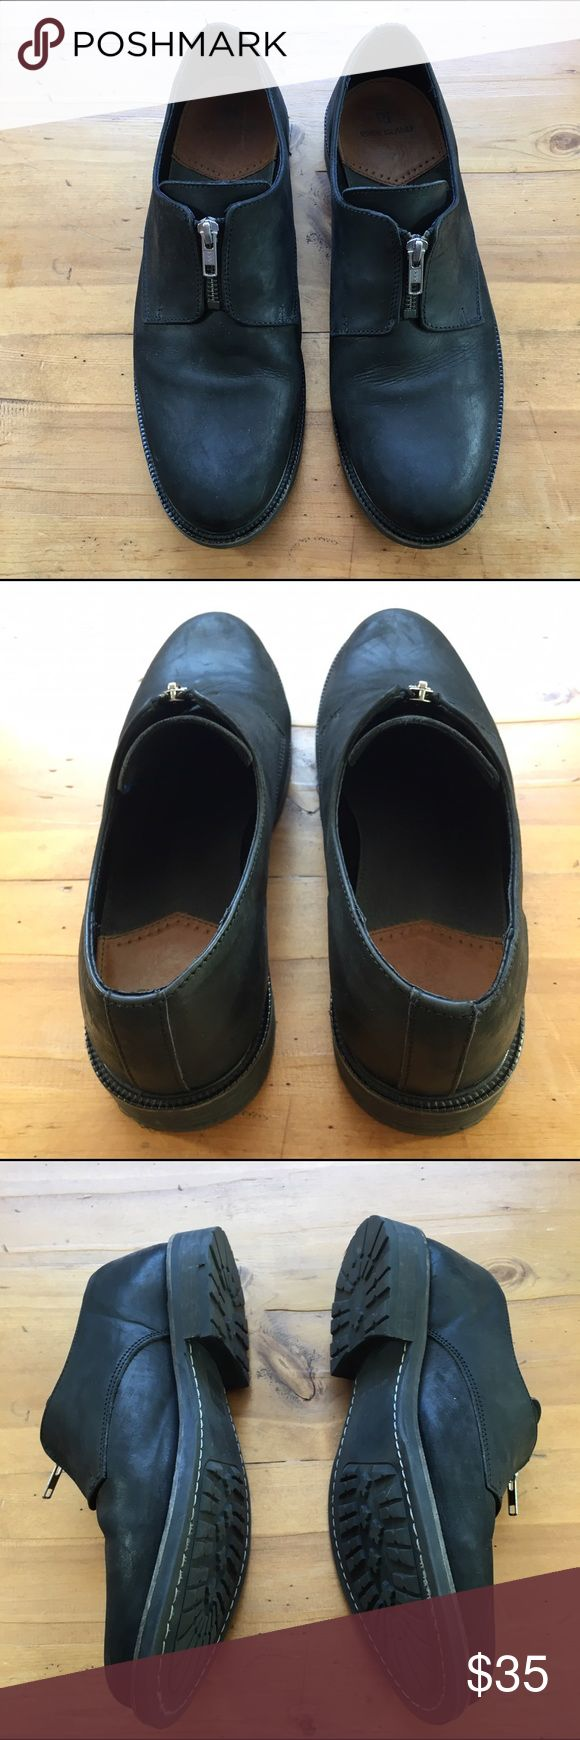 River Island Mens Leather Shoes Like new and in excellent condition black size 10 beautiful shoes heel approximately 1 inch 💕💕 River Island Shoes